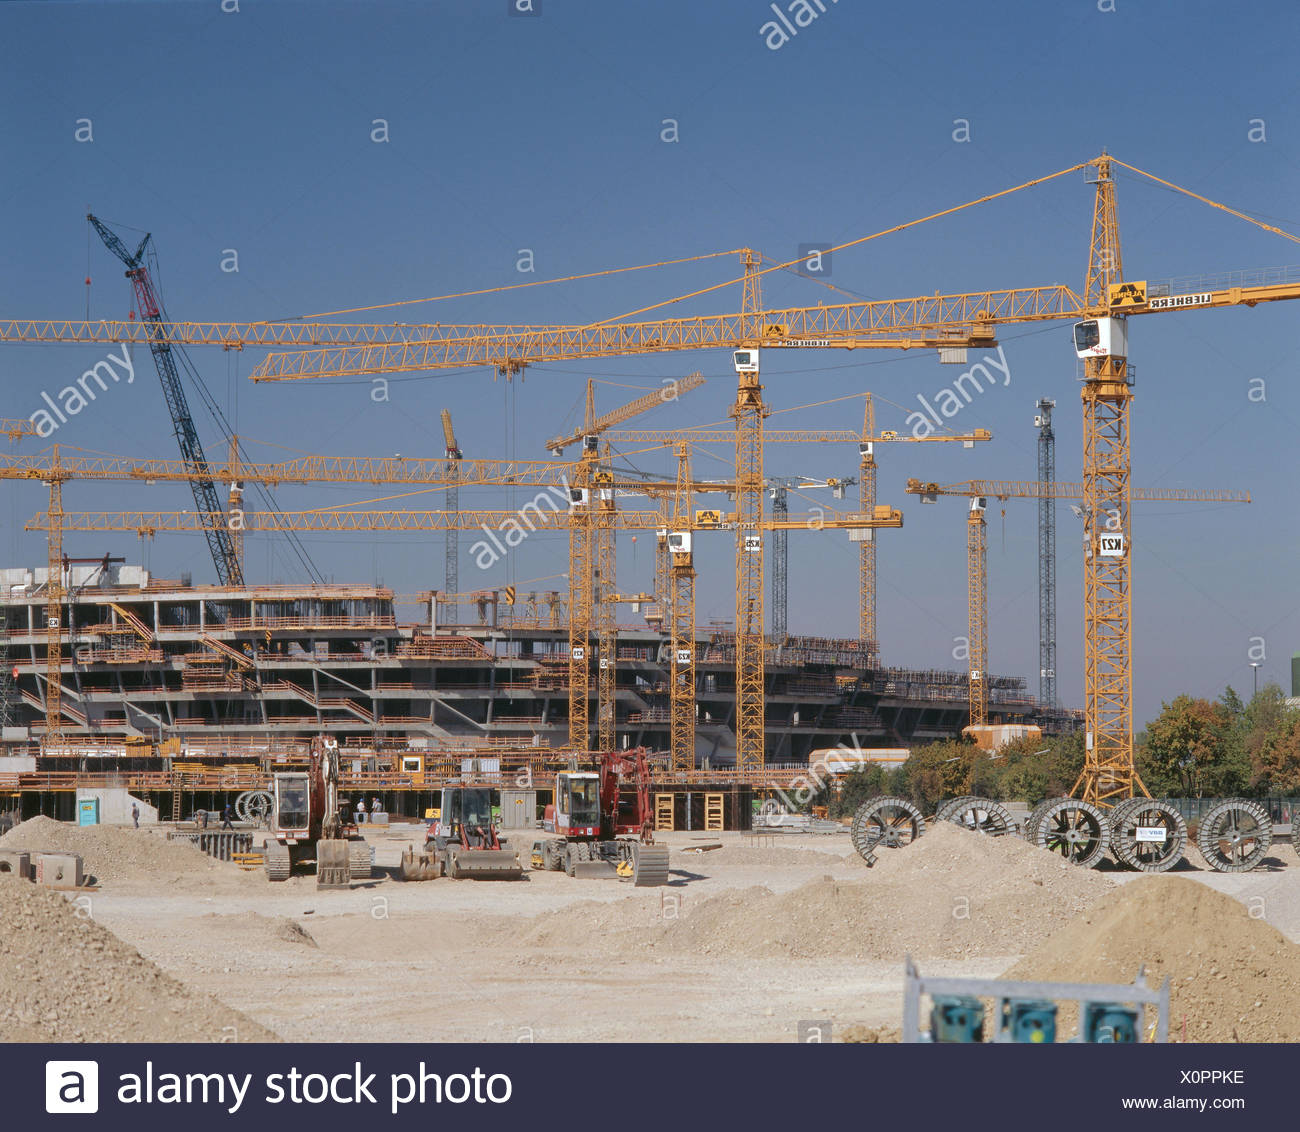 Germany, Bavaria, Munich, Fröttmaning, alliance arena, construction site, no property release, Europe, Upper Bavaria, men at work, football stadium, sports arena, football arena, construction phase, shell, cranes, football clubs, in 1860 Munich, Bavaria M - Stock Image